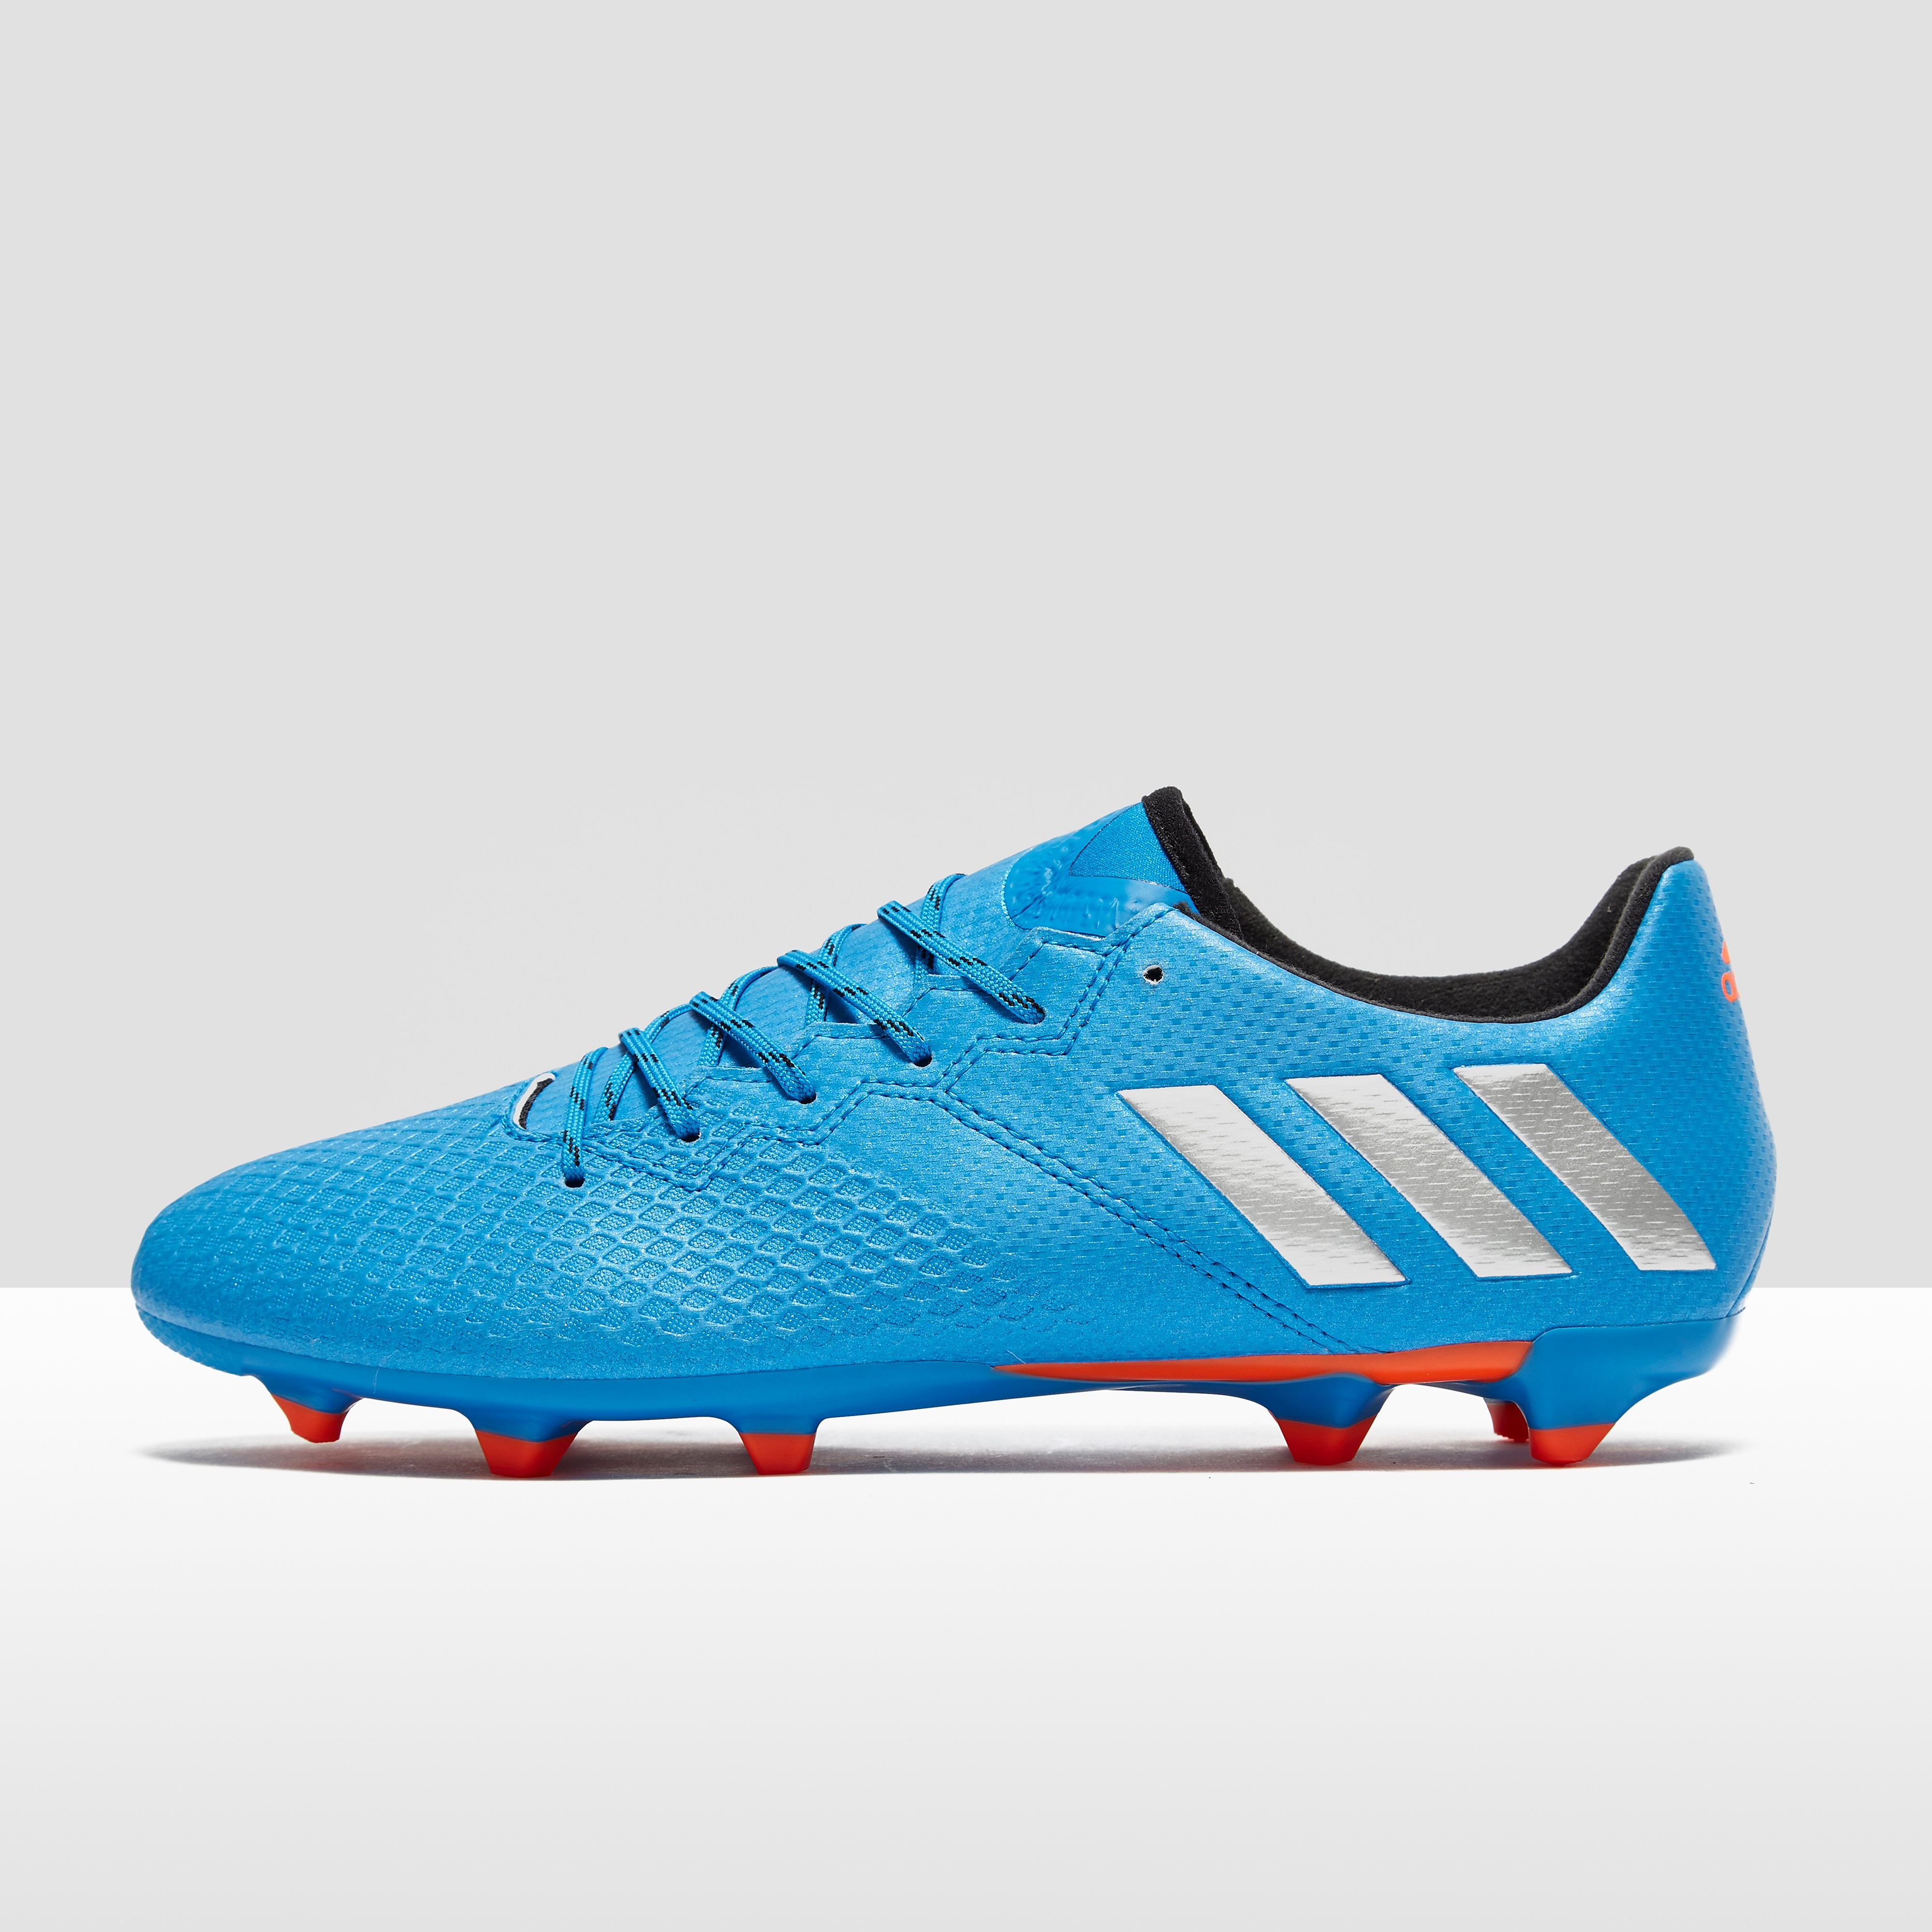 adidas Messi 16.3 Firm Ground